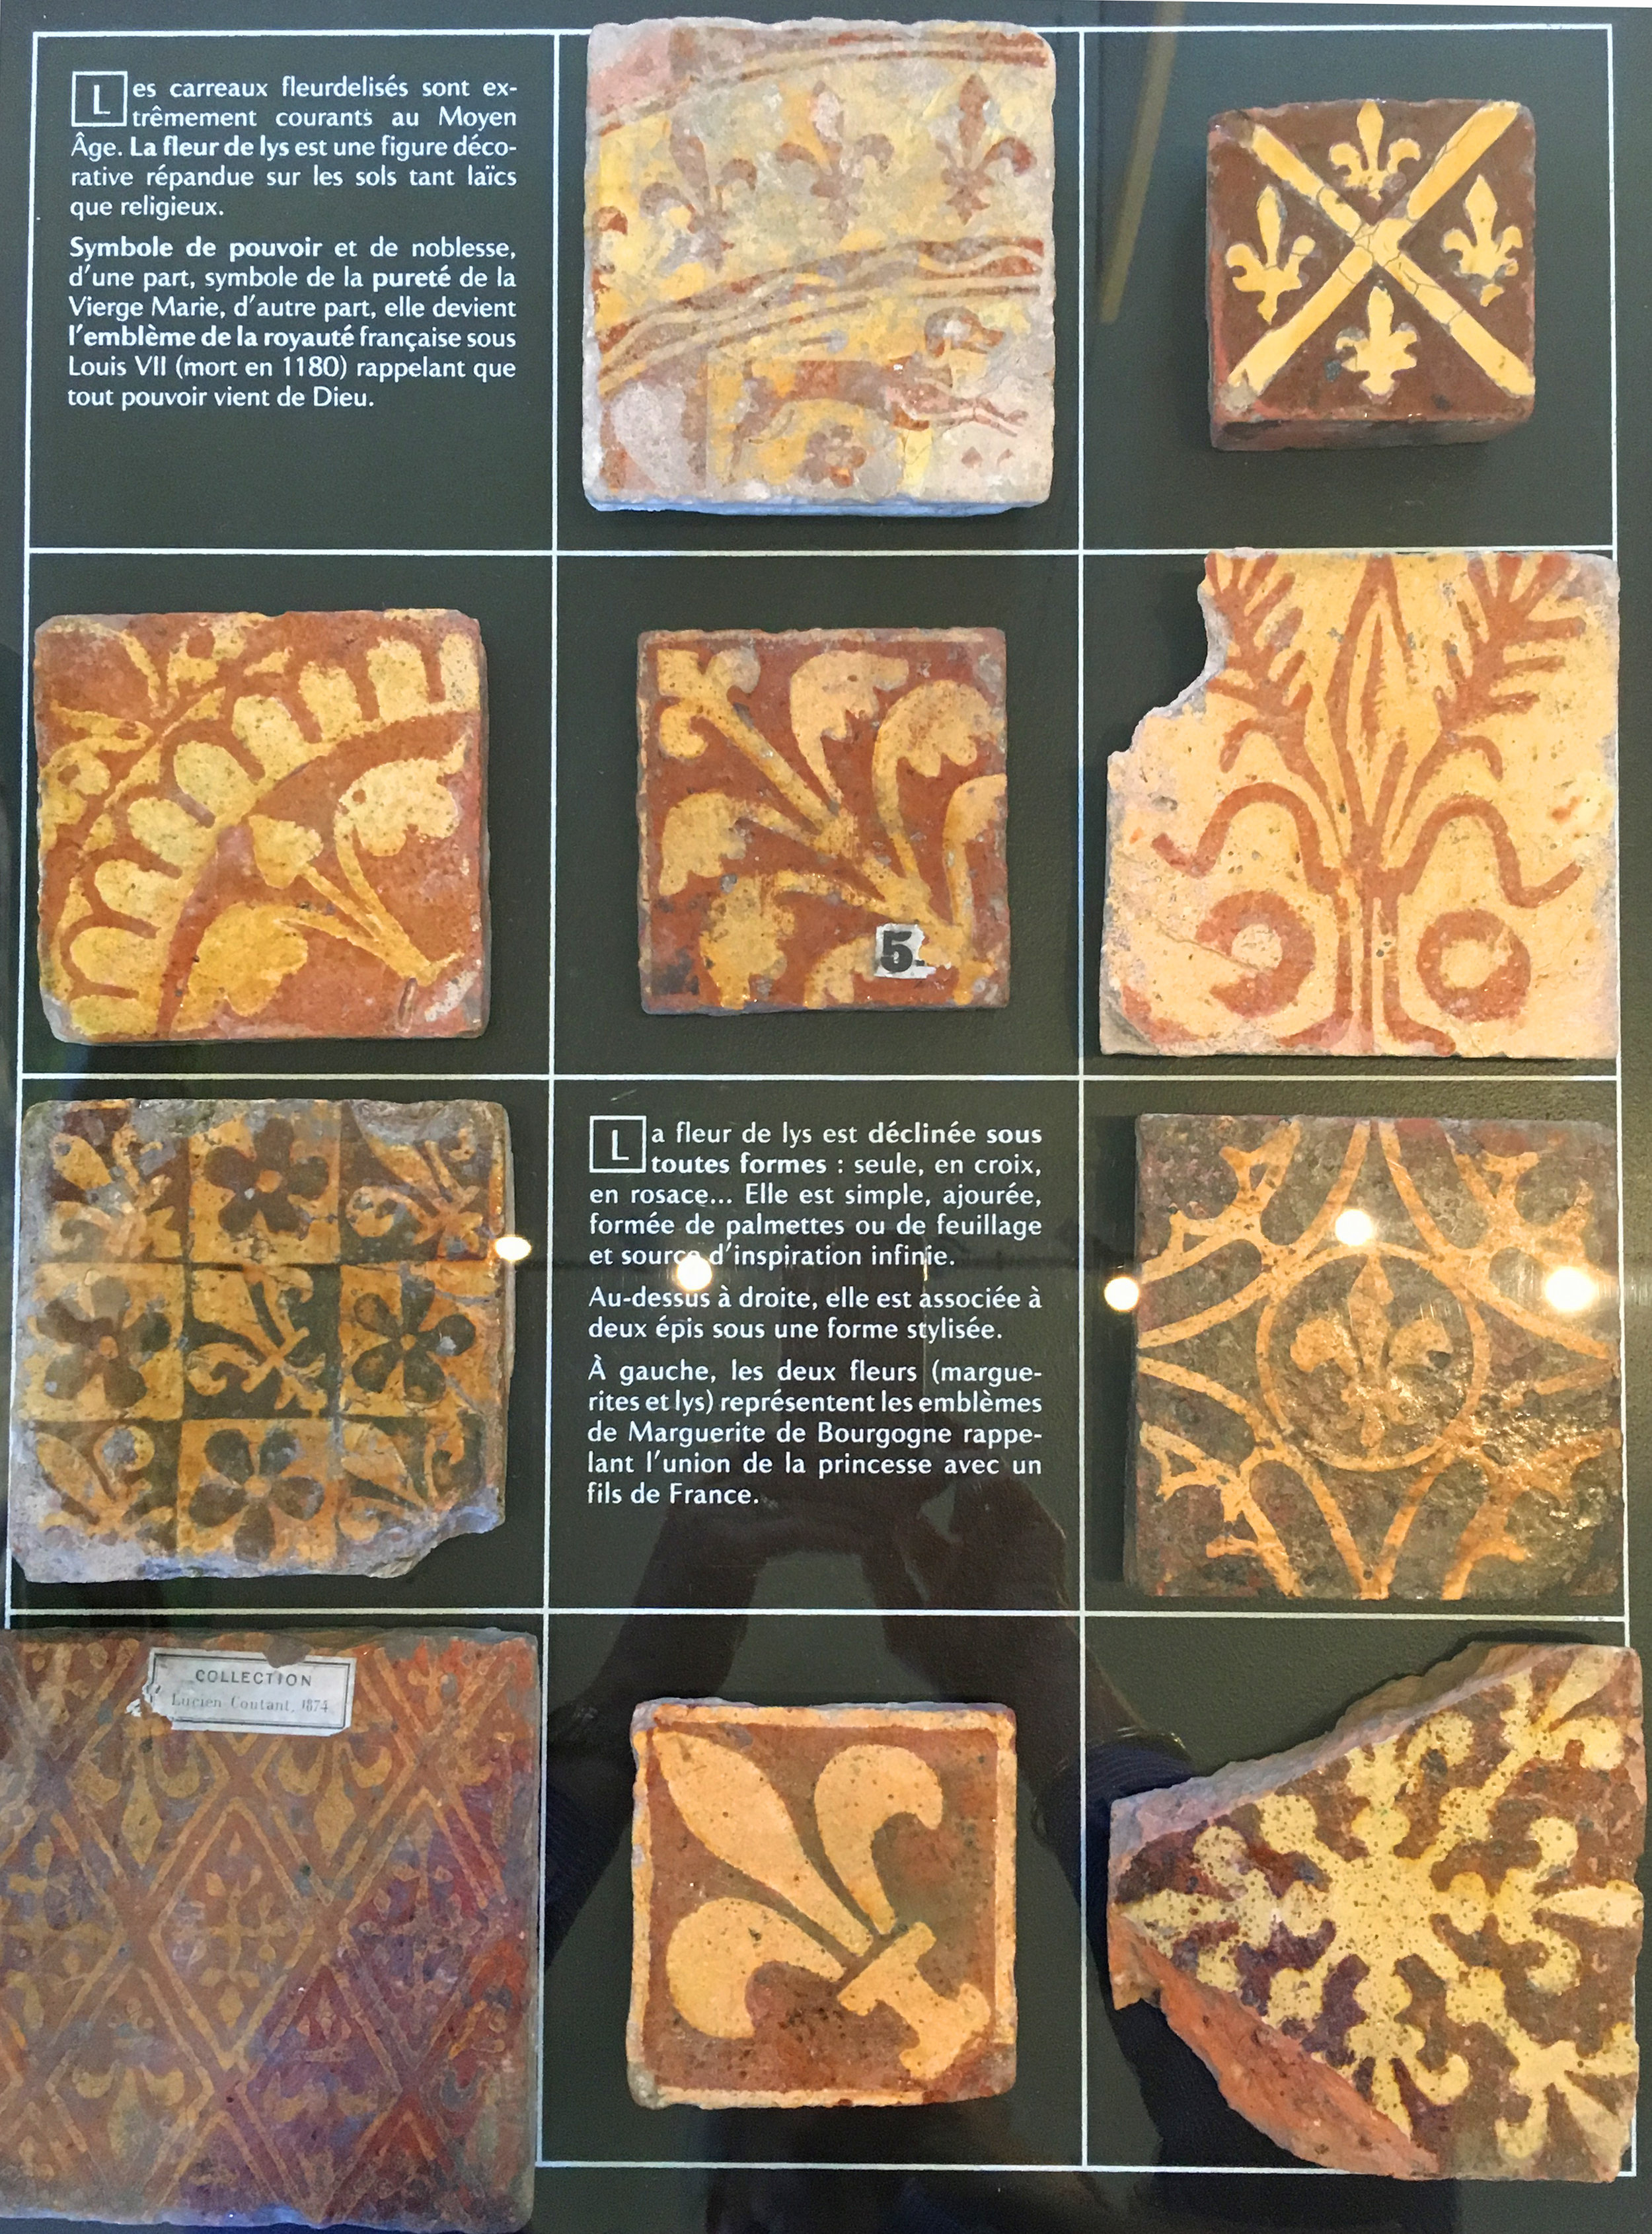 One of the displays of medieval tiles at the Musée Saint Loup, Troyes (photograh J. Cook)